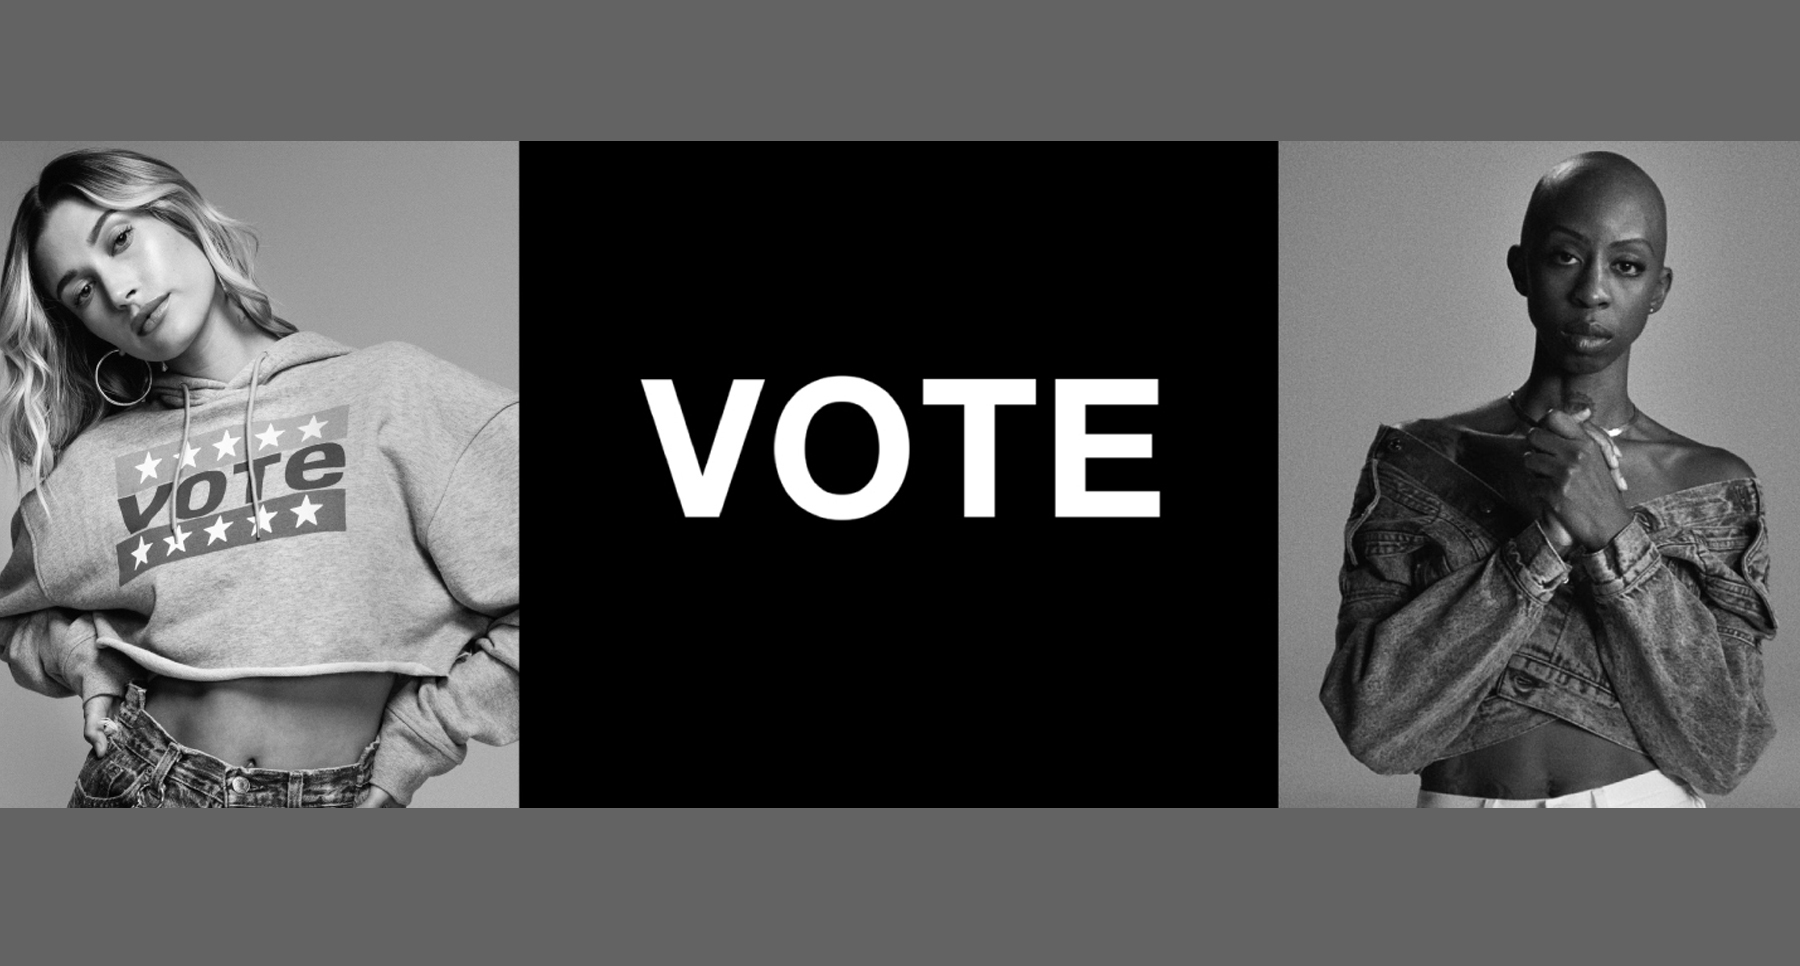 Brand Levi's Partnership, Vote About It marketing campaign with 2 models wearing vote-themed clothing